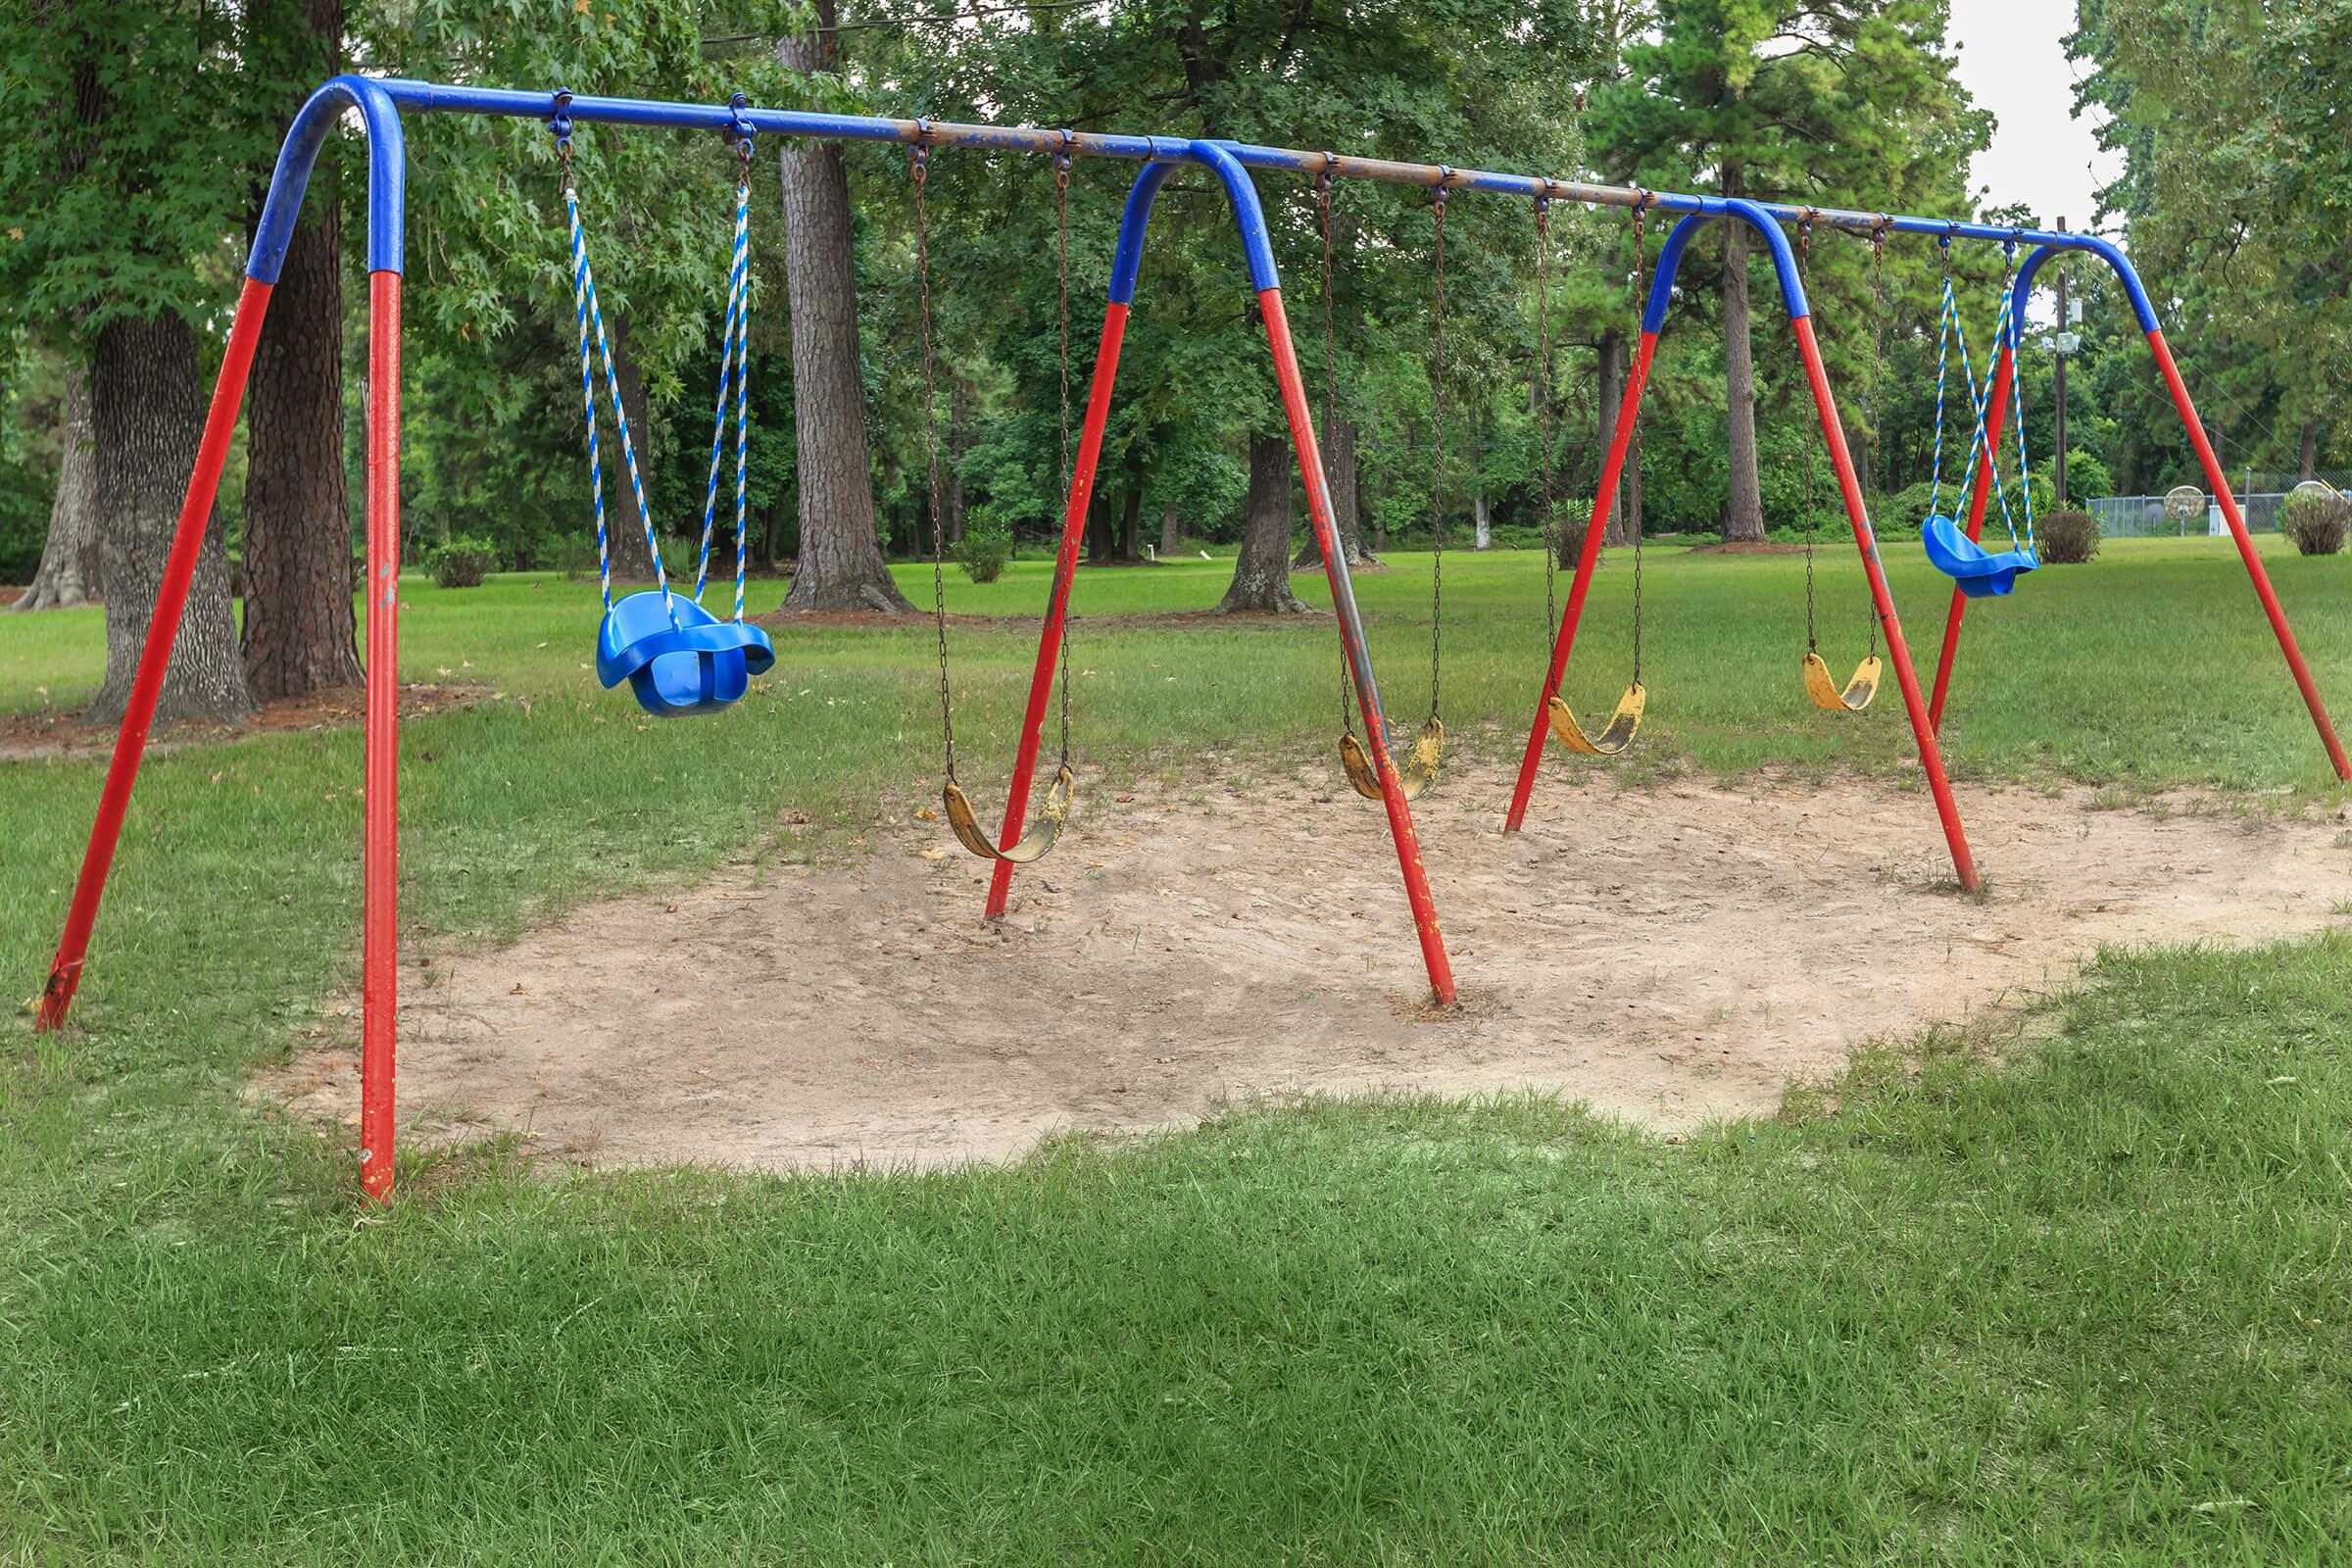 a swing set in a park